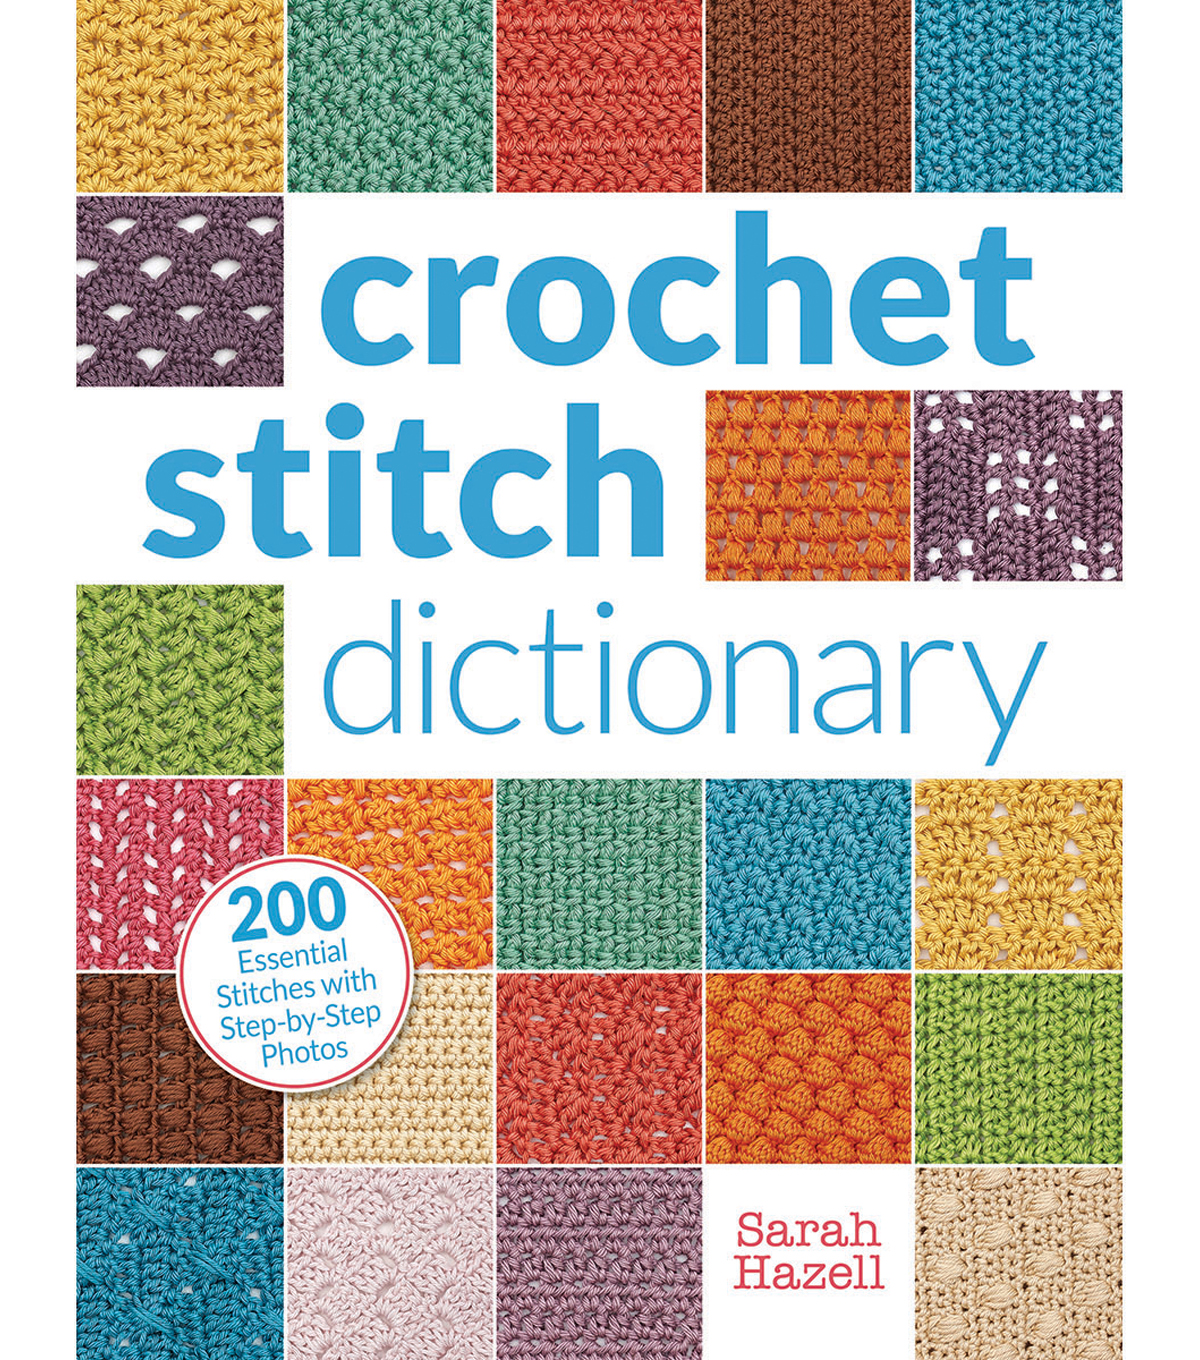 Crochet Stitch Dictionary Book